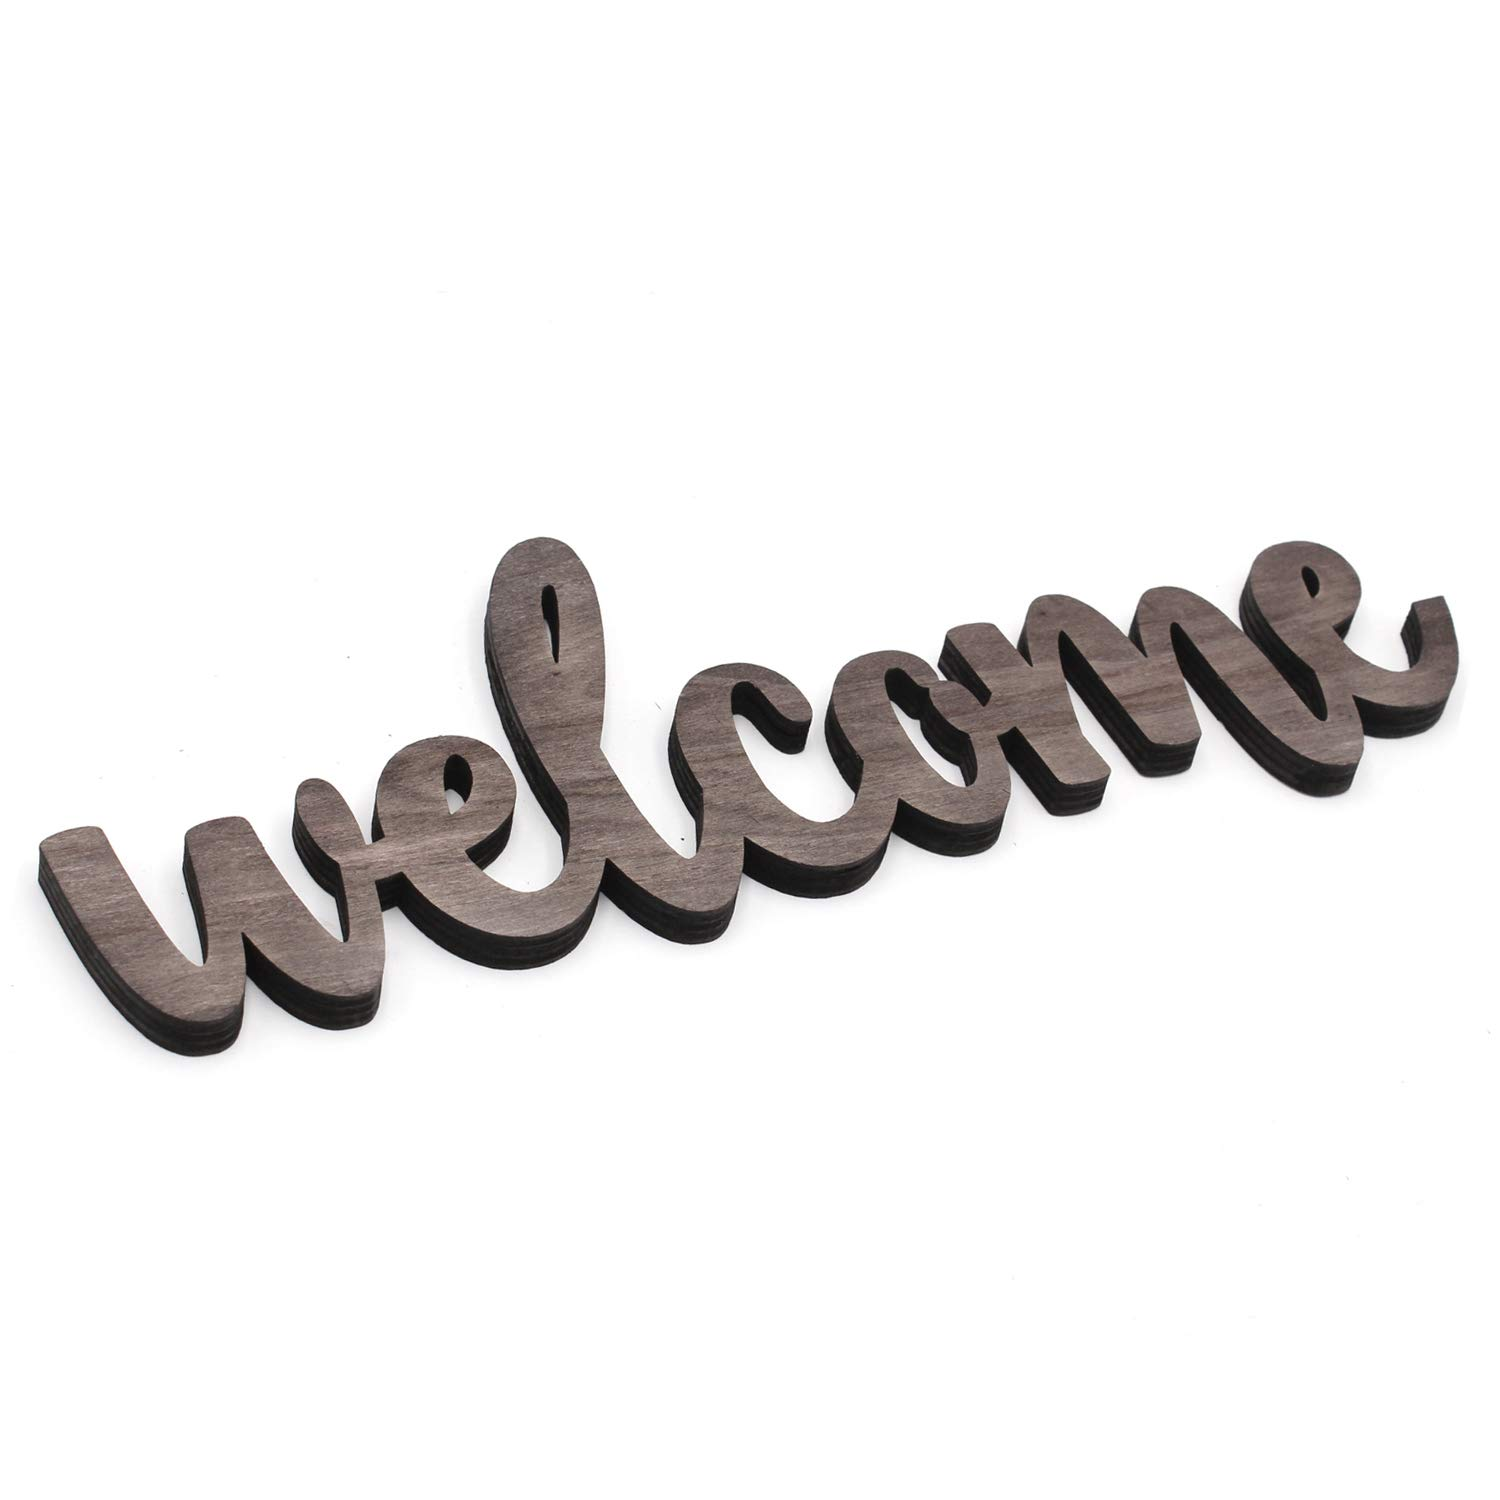 KU-DaYi Welcome Cutout Wood Sign Home Décor Wall Art Decor Rustic Farmhouse Front Door Sign 12 Inch Long